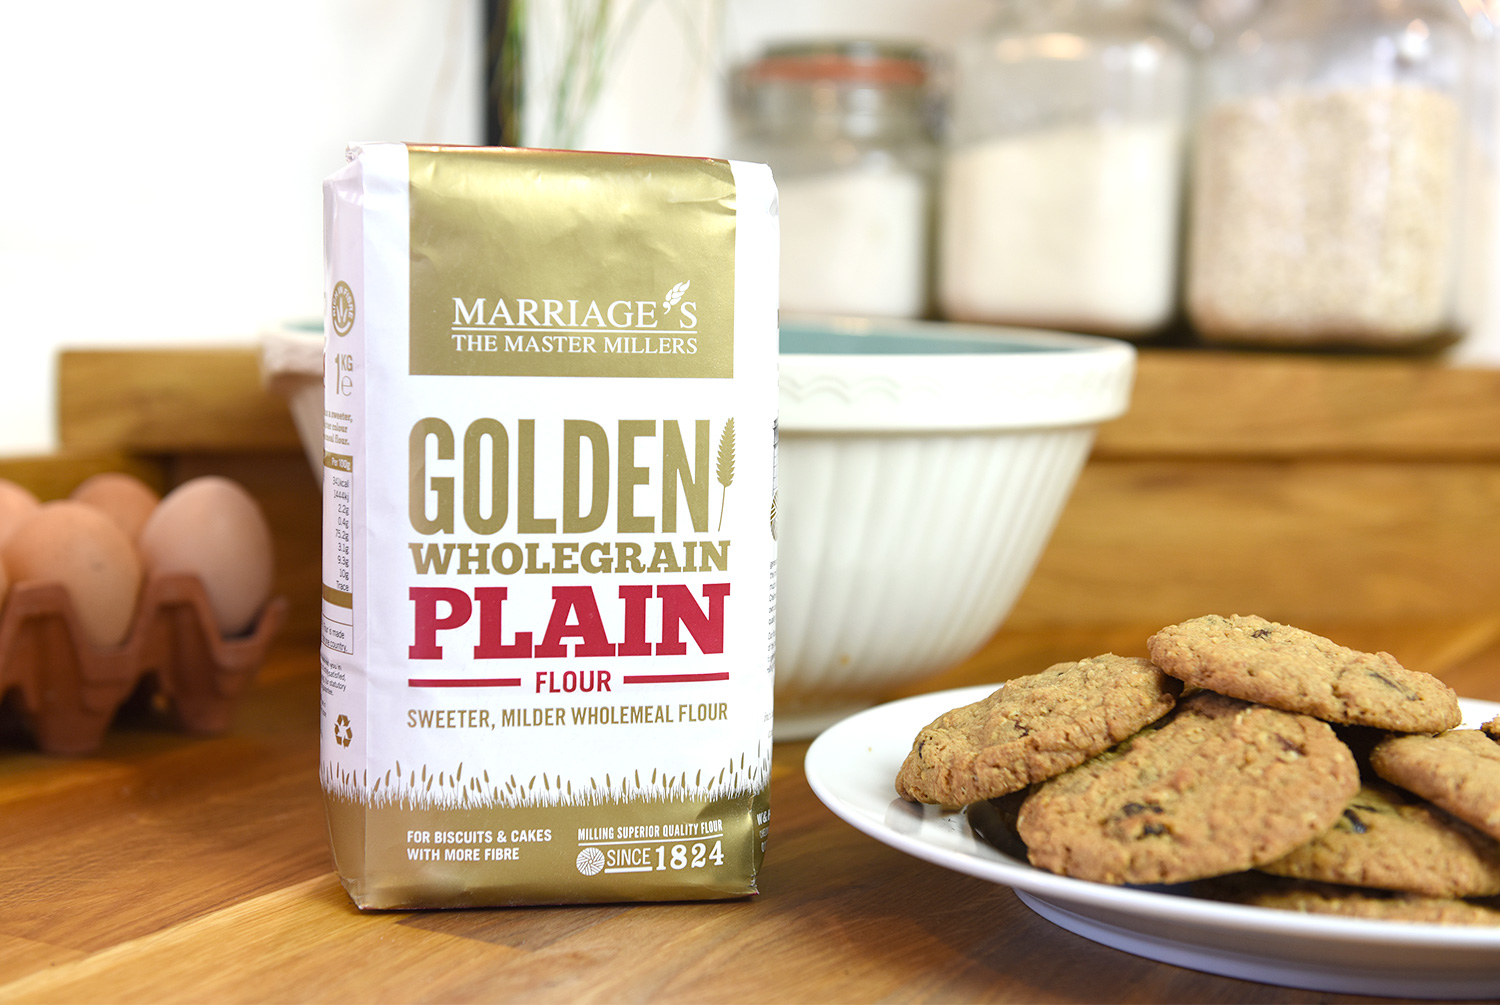 Marriage's Golden Wholegrain Flour bag